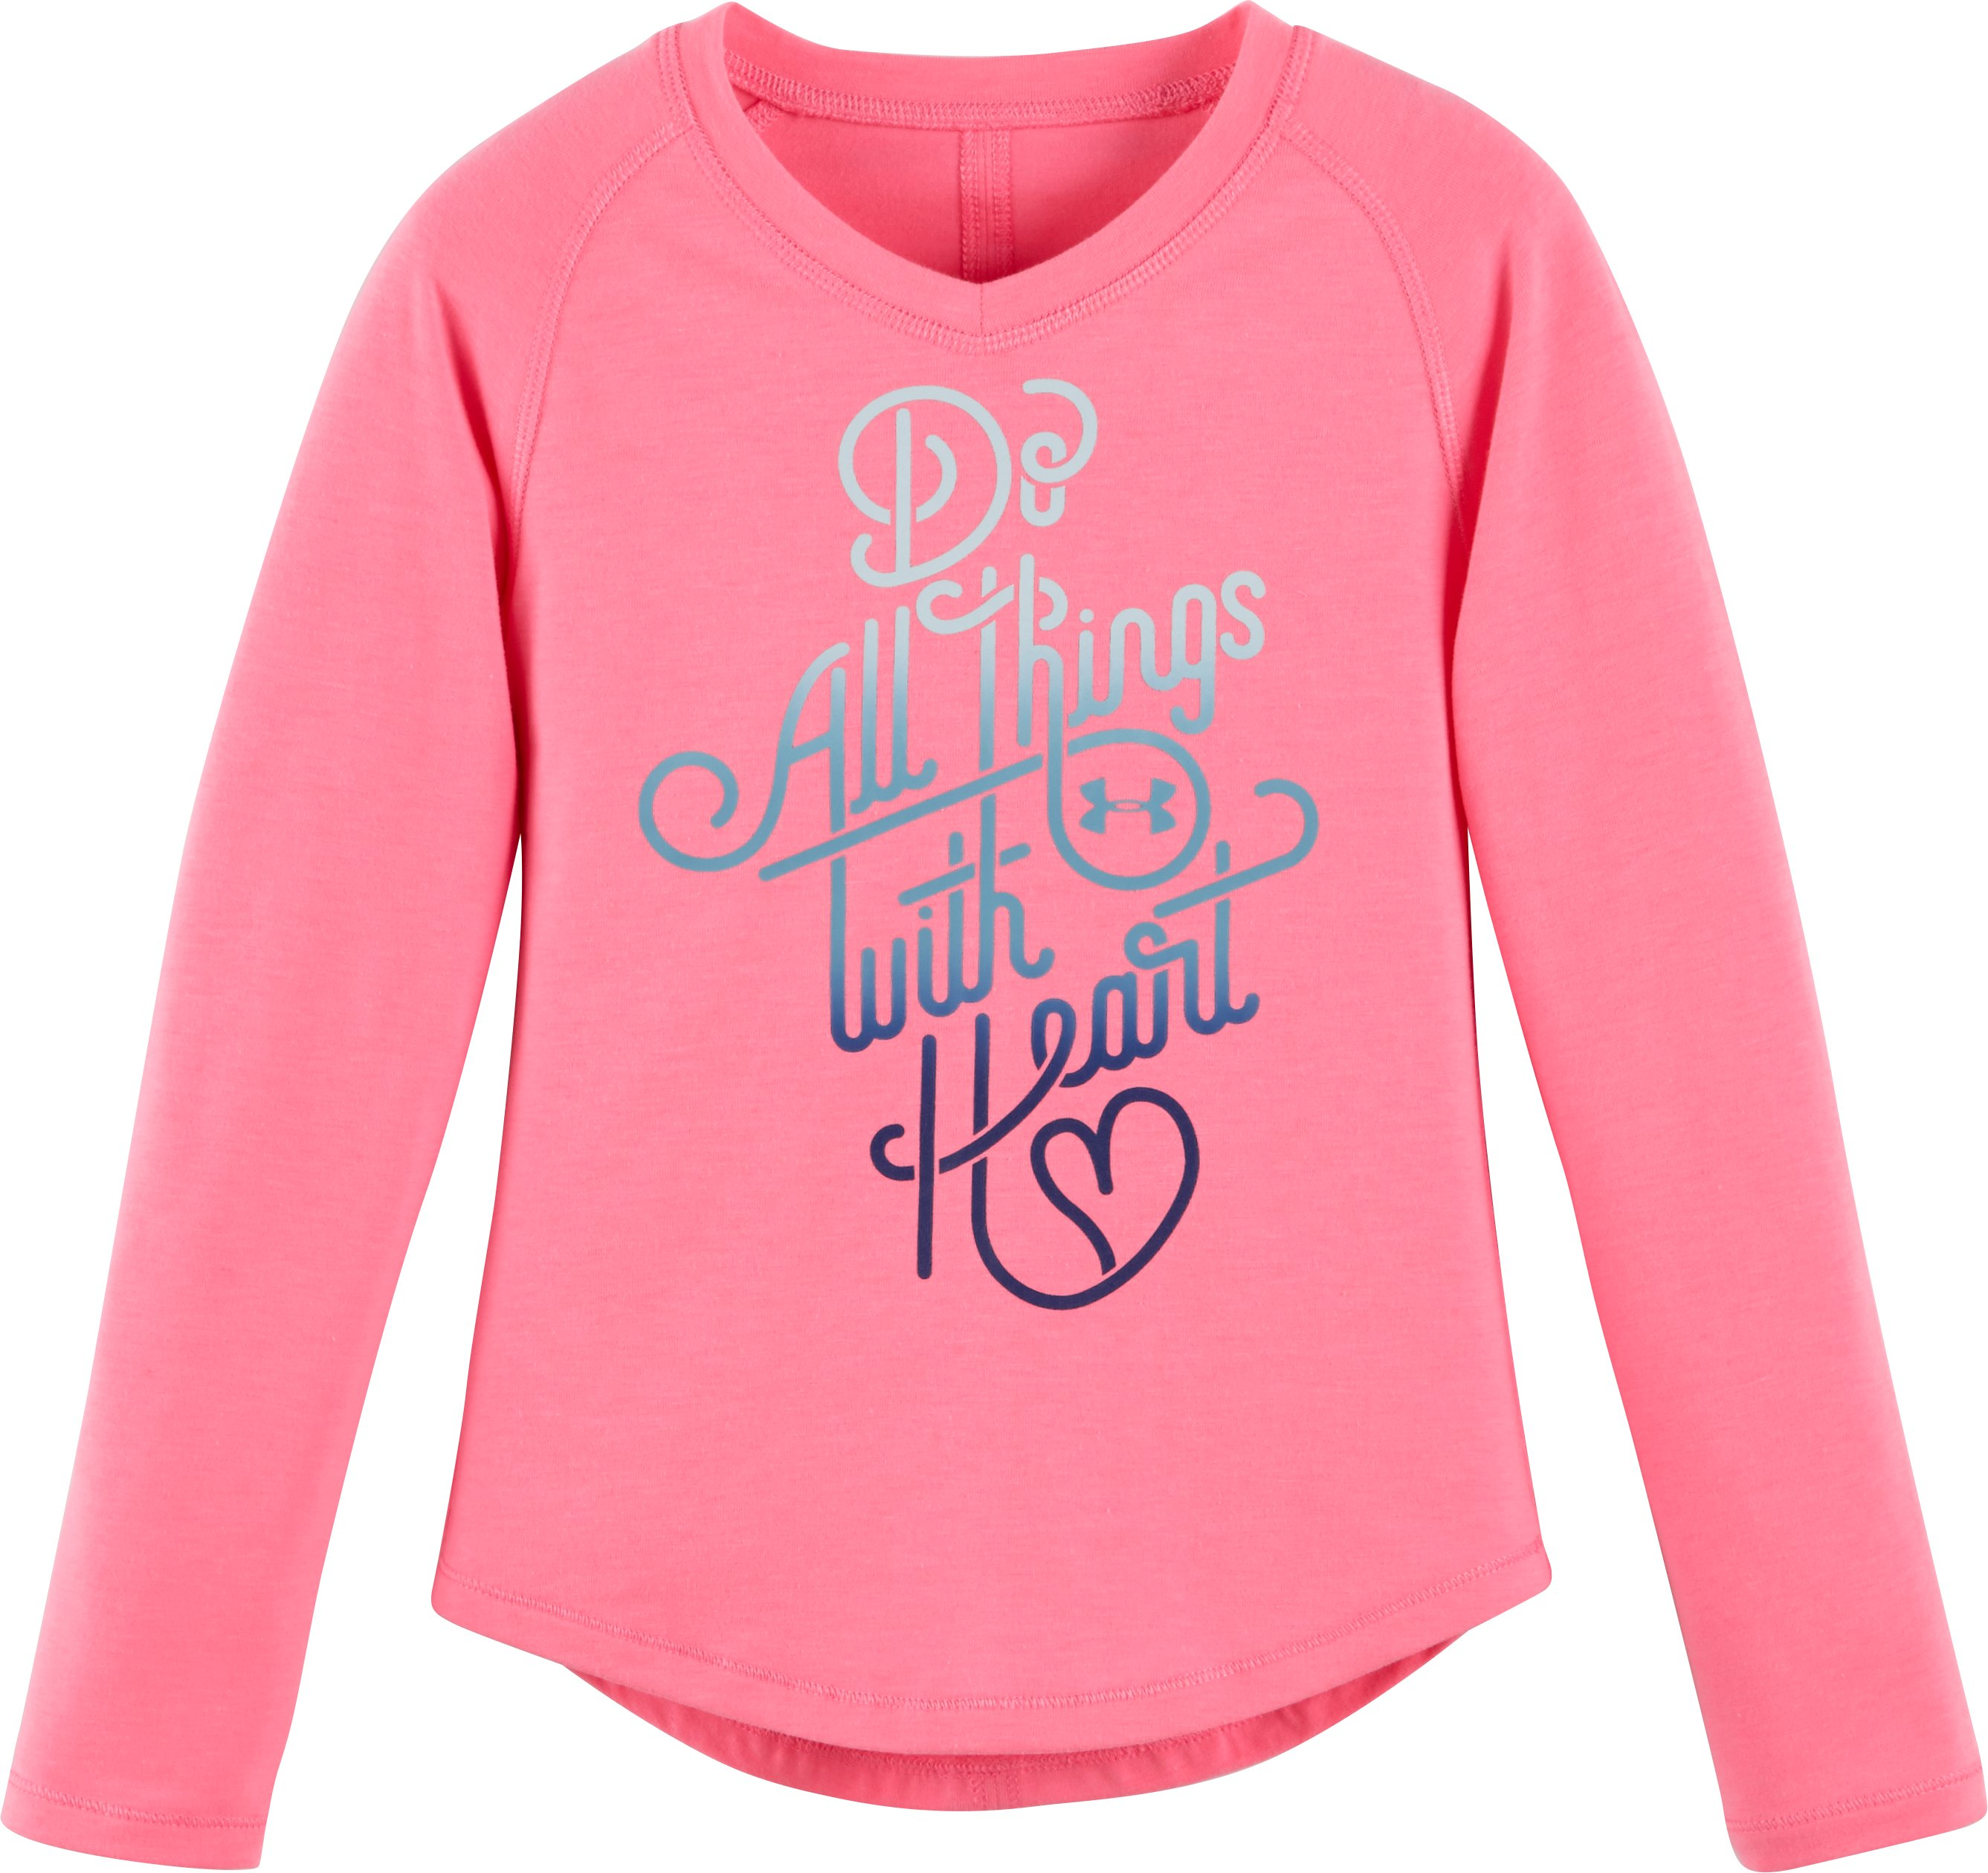 Girls' Infant UA Do All Things With <3 V-Neck, PINK PUNK, zoomed image